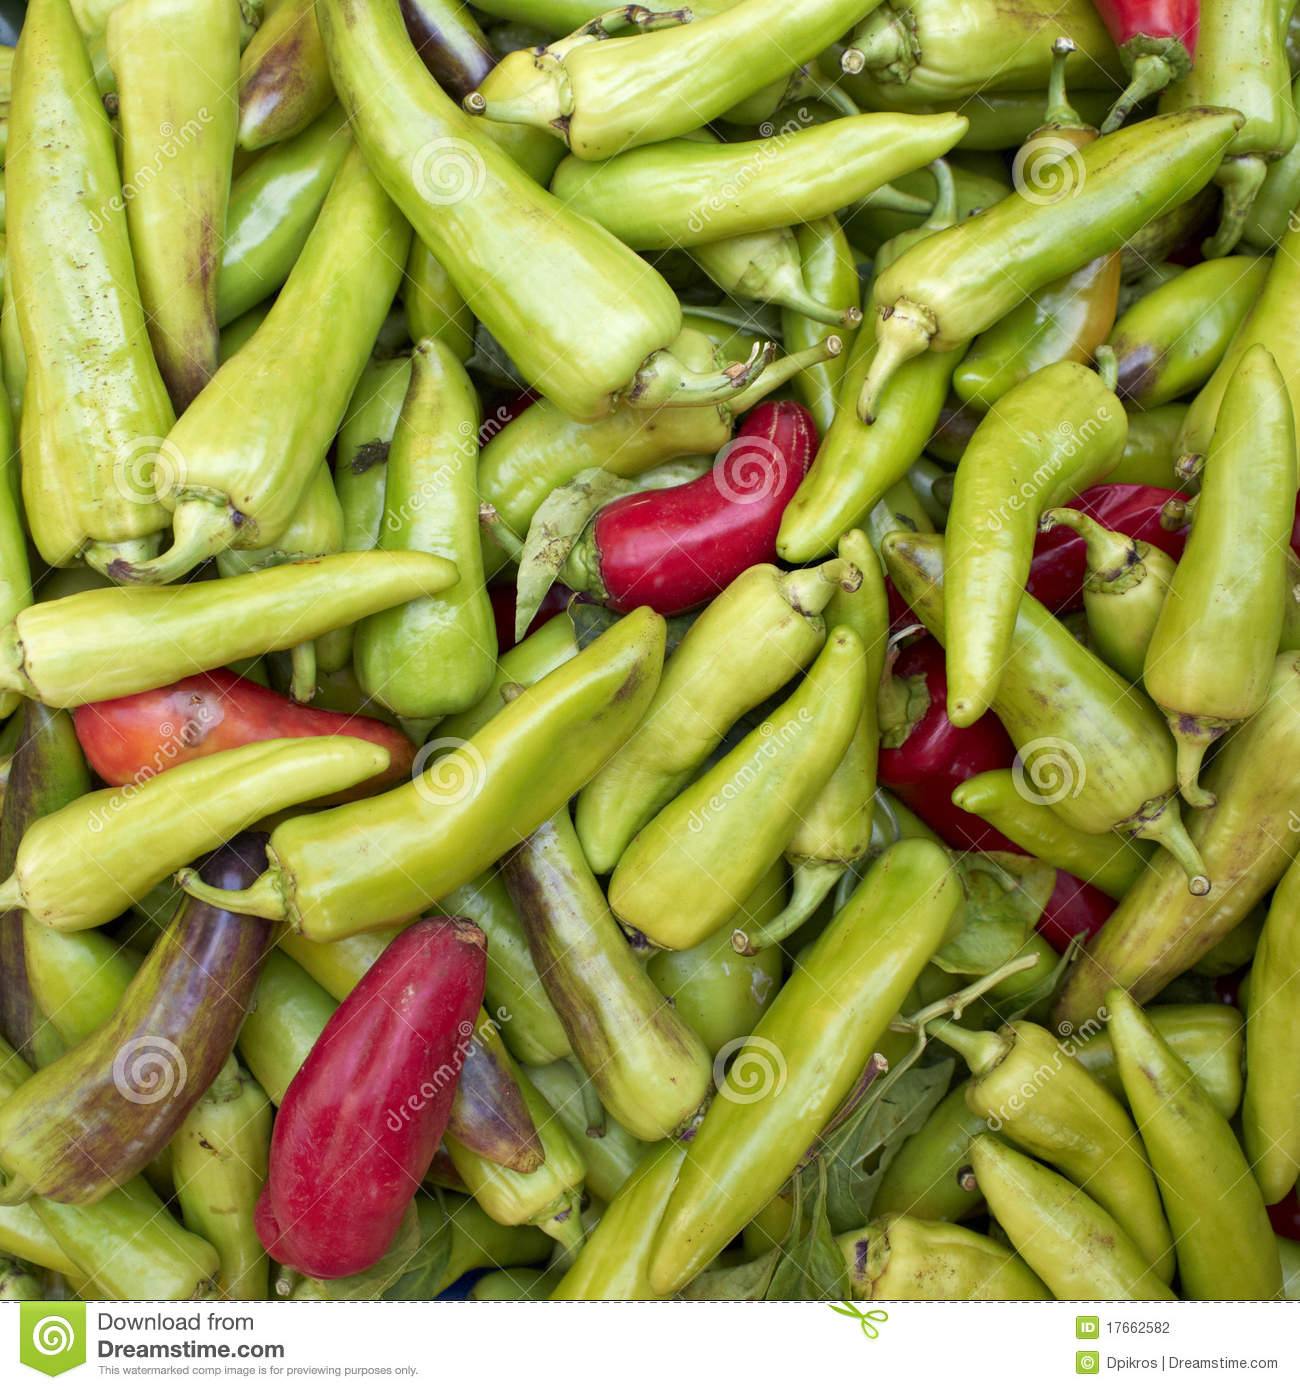 Red And Green Corn Peppers Stock Photography - Image: 17662582